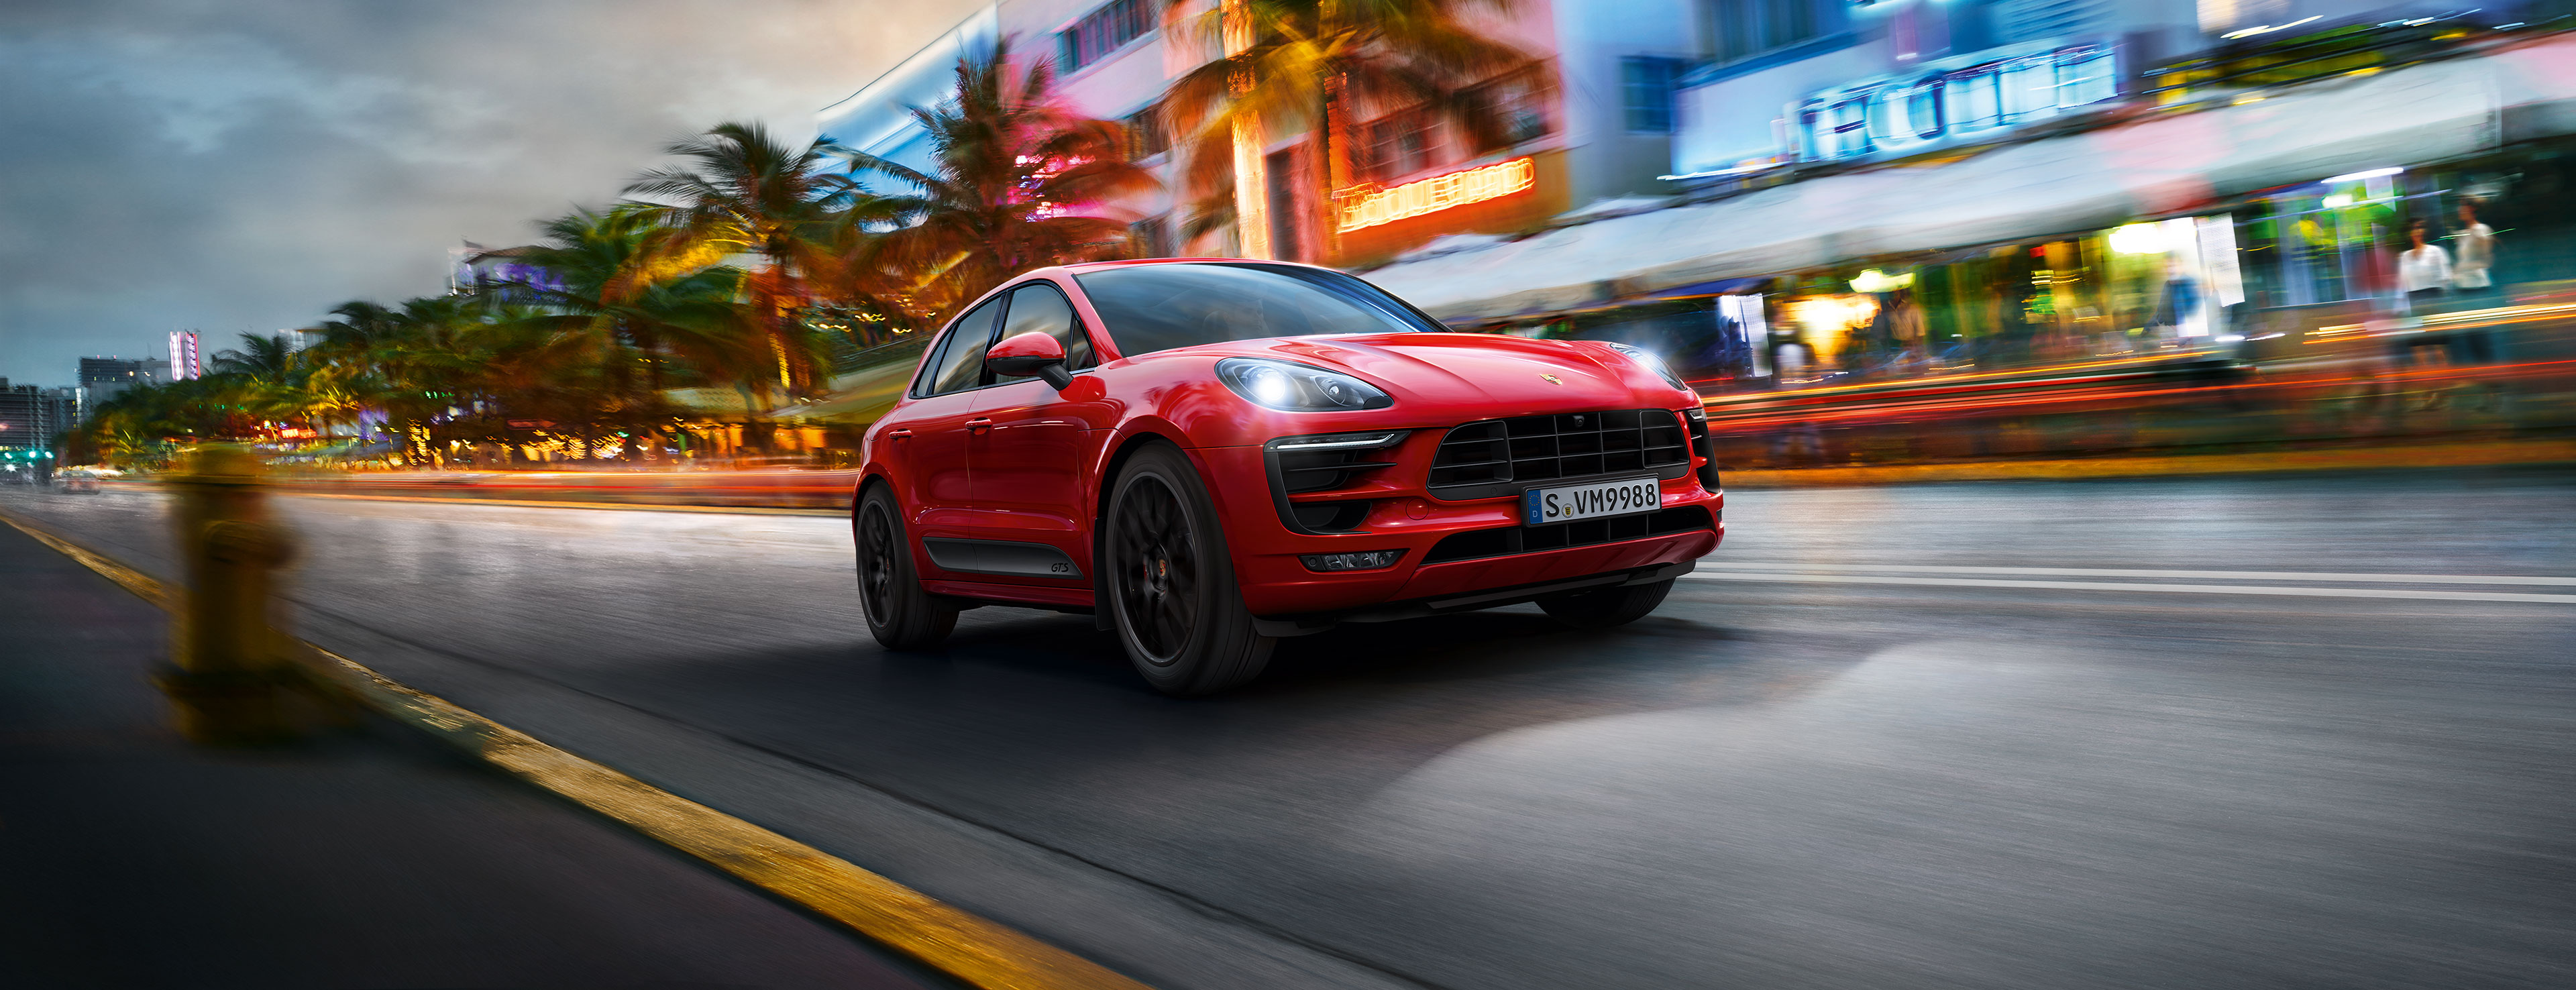 Porsche - Life, intensified. - The new Macan GTS.